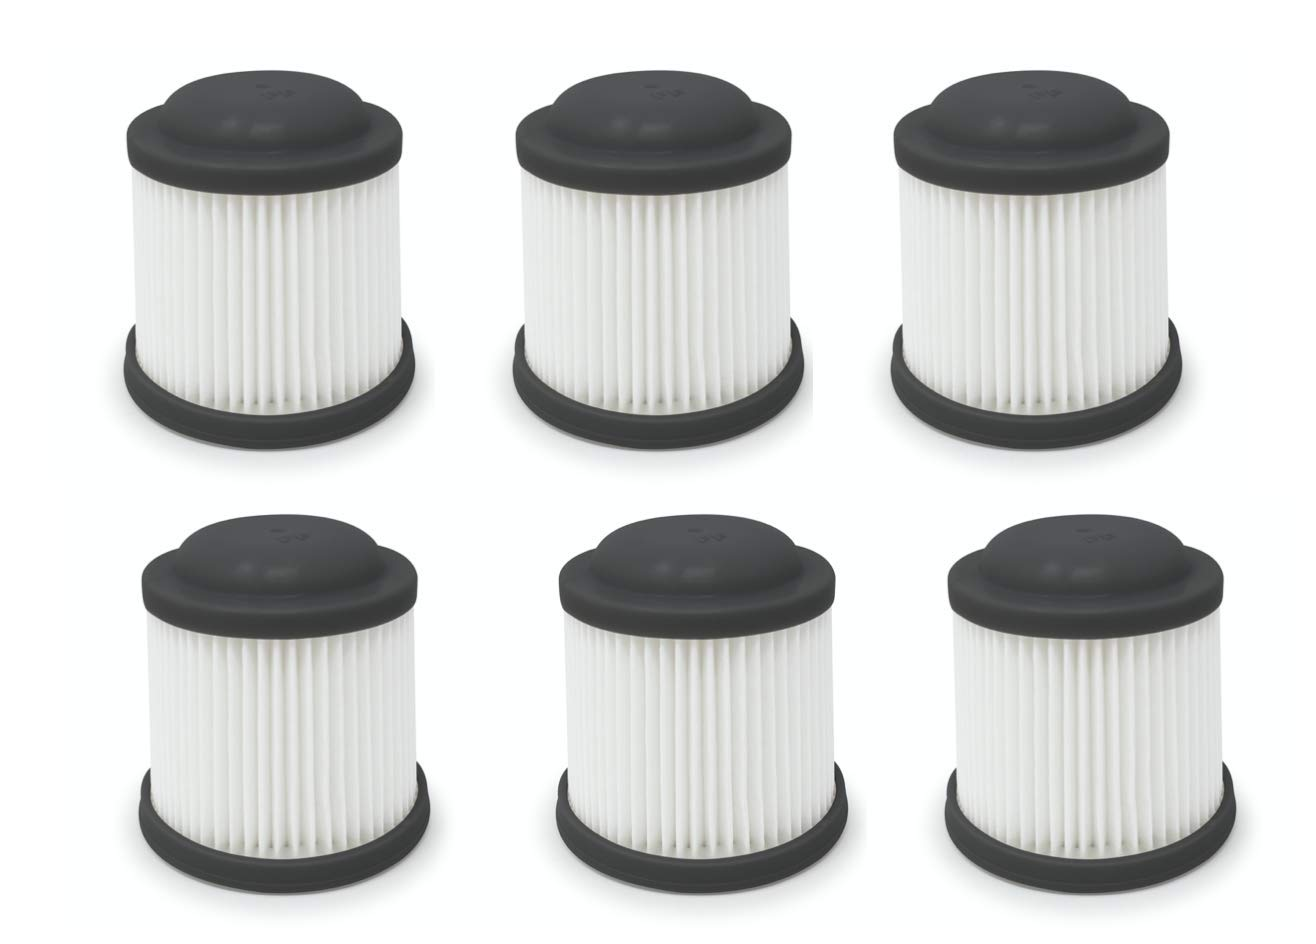 Cordless Vac Replacement Filter Compatible with Black & Decker. Compare to Part # PVF110. (6-Pack) by Fette Filter